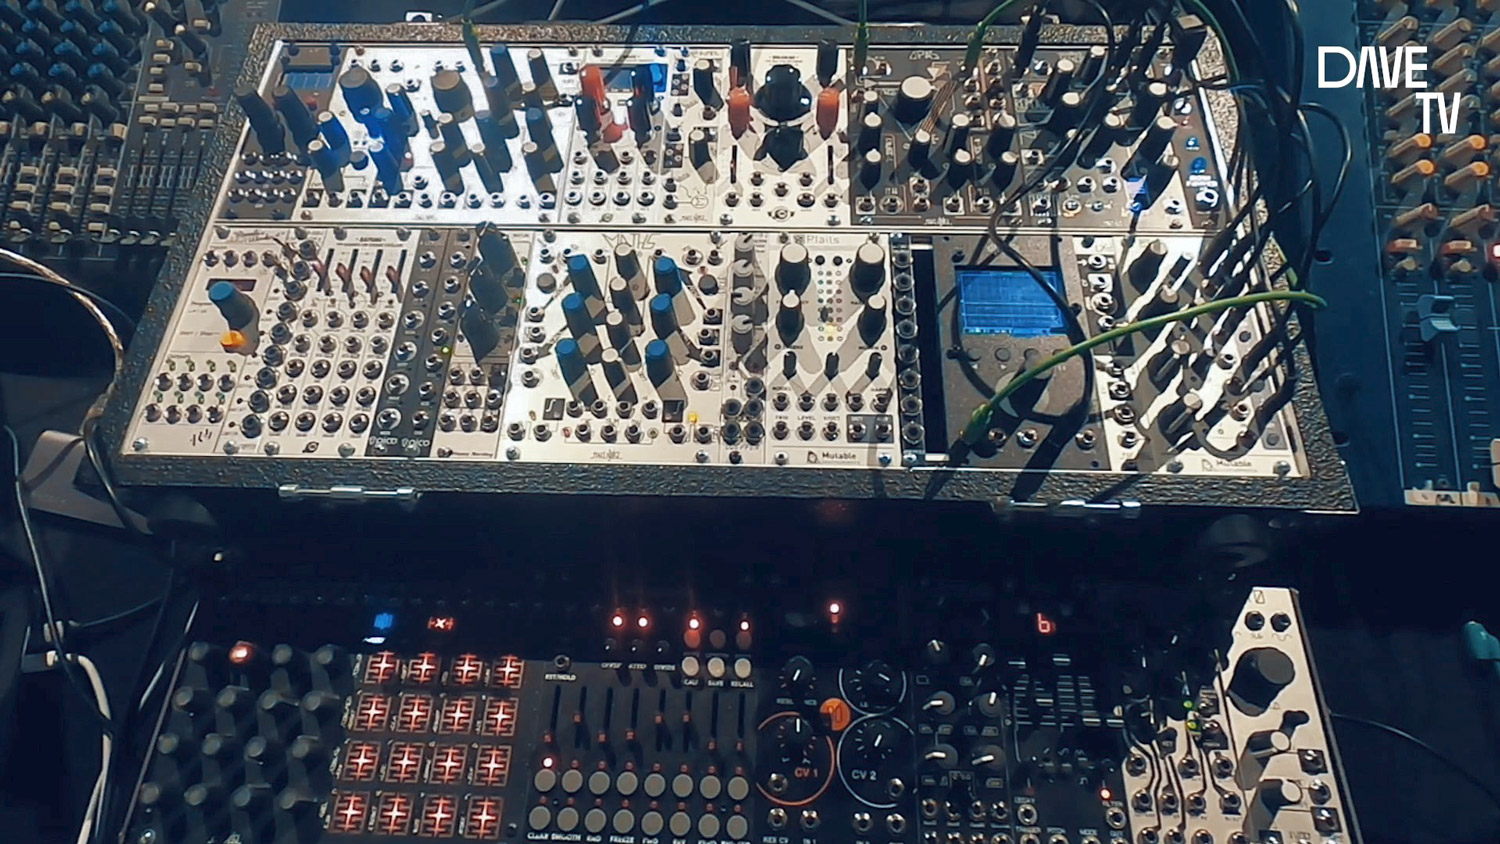 DAVE Workshop Modular Synthesizer